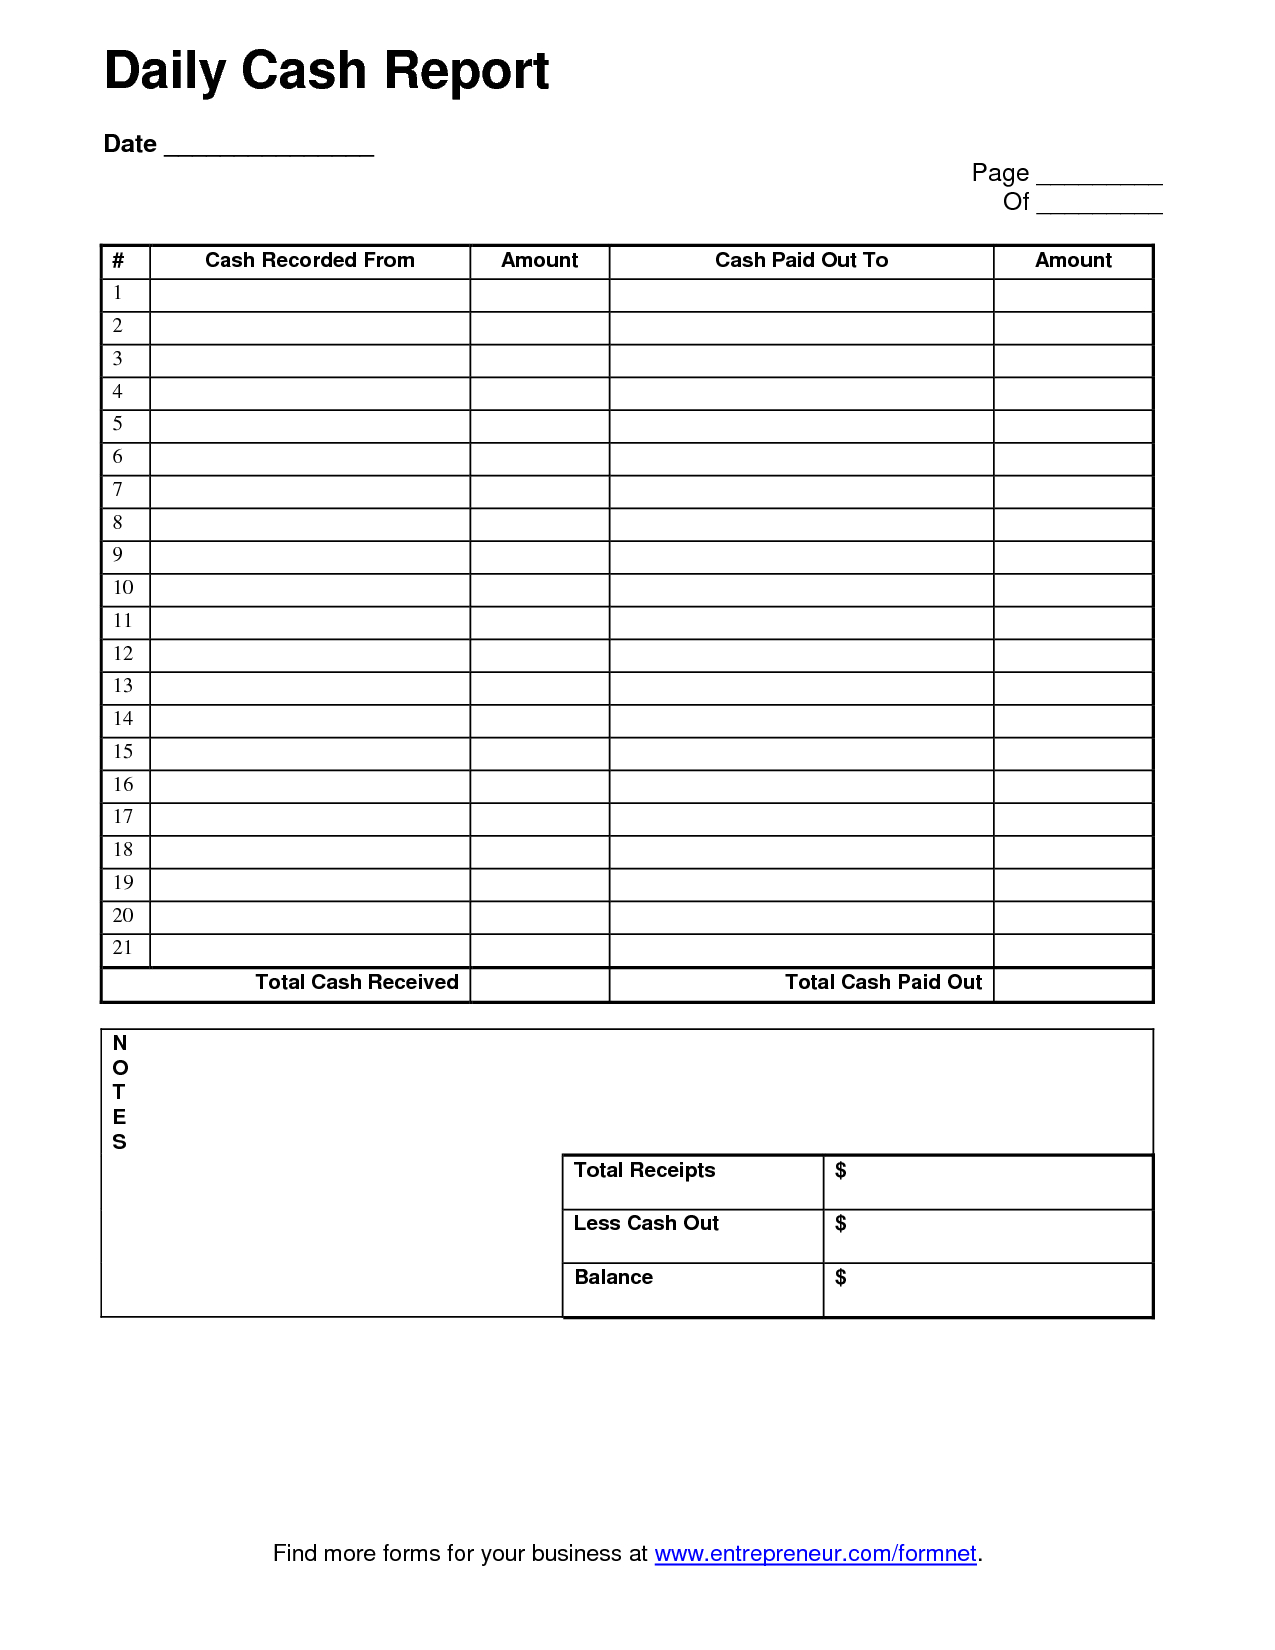 Daily Cash Sheet Template | Daily Report Template | Report Inside Daily Report Sheet Template